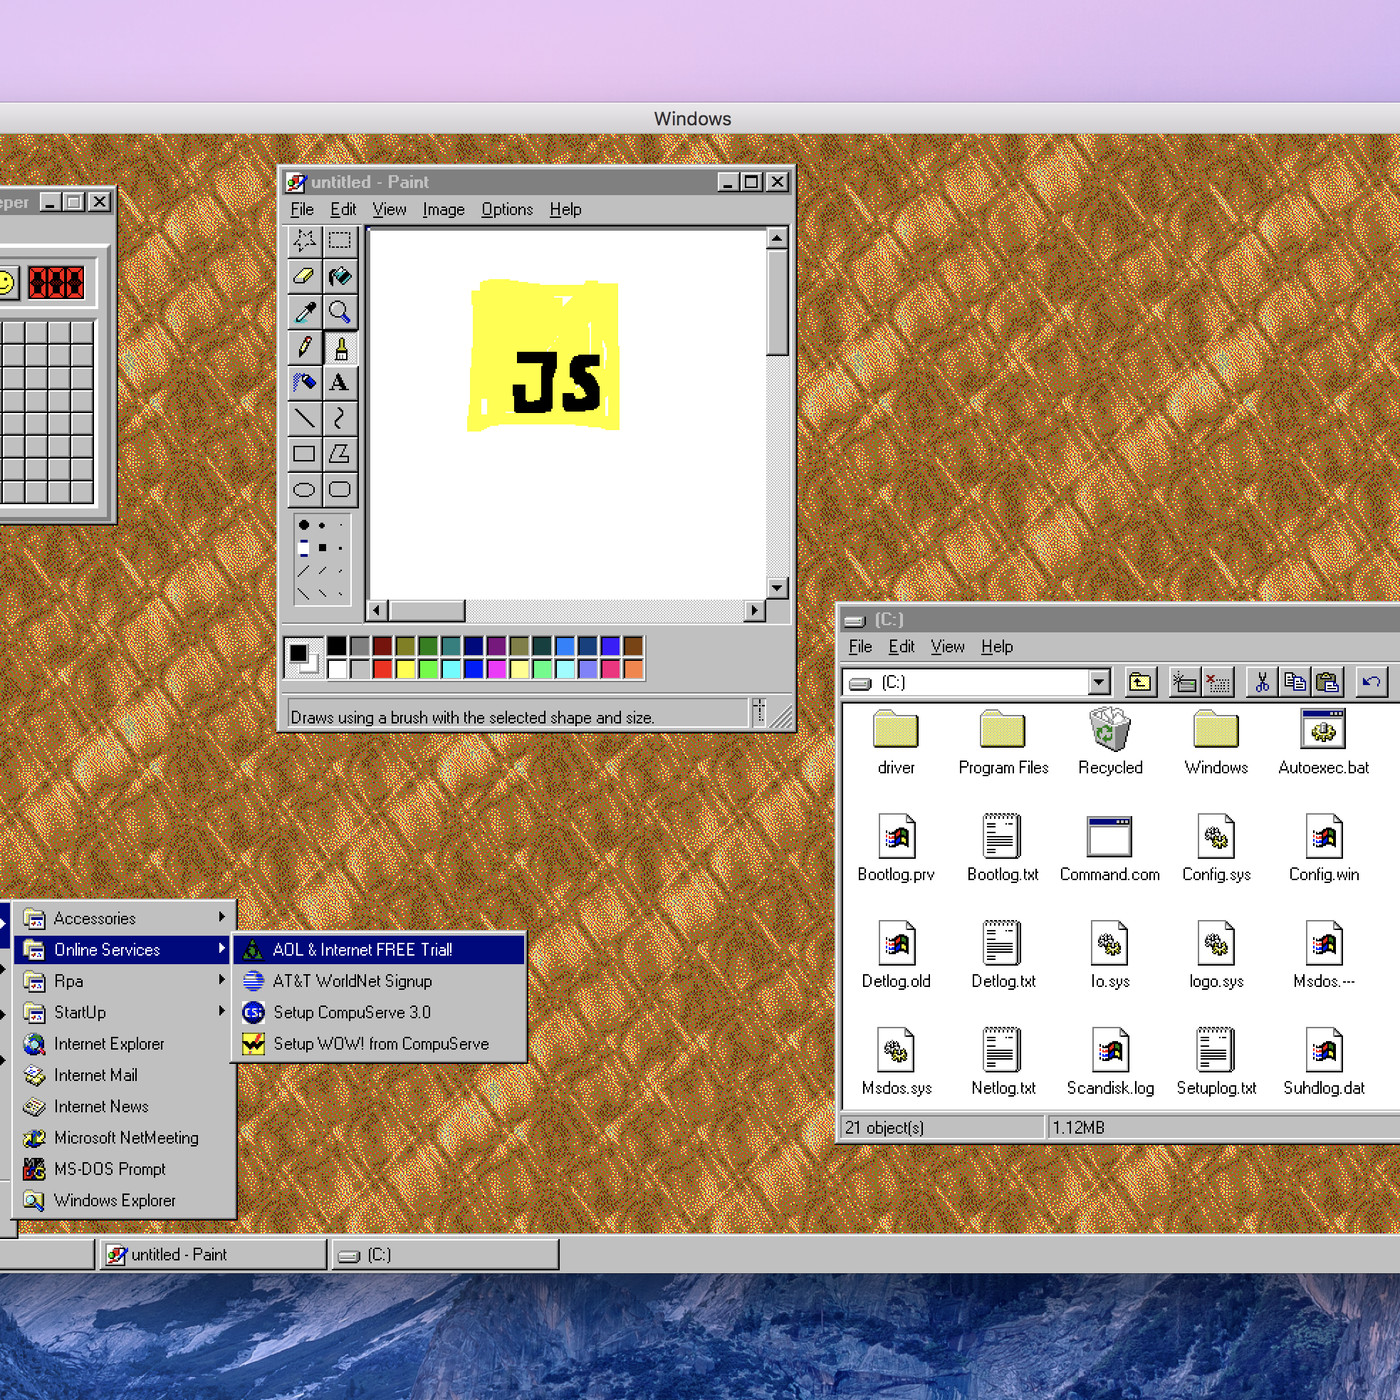 Windows 95 is now an app you can download and install on macOS